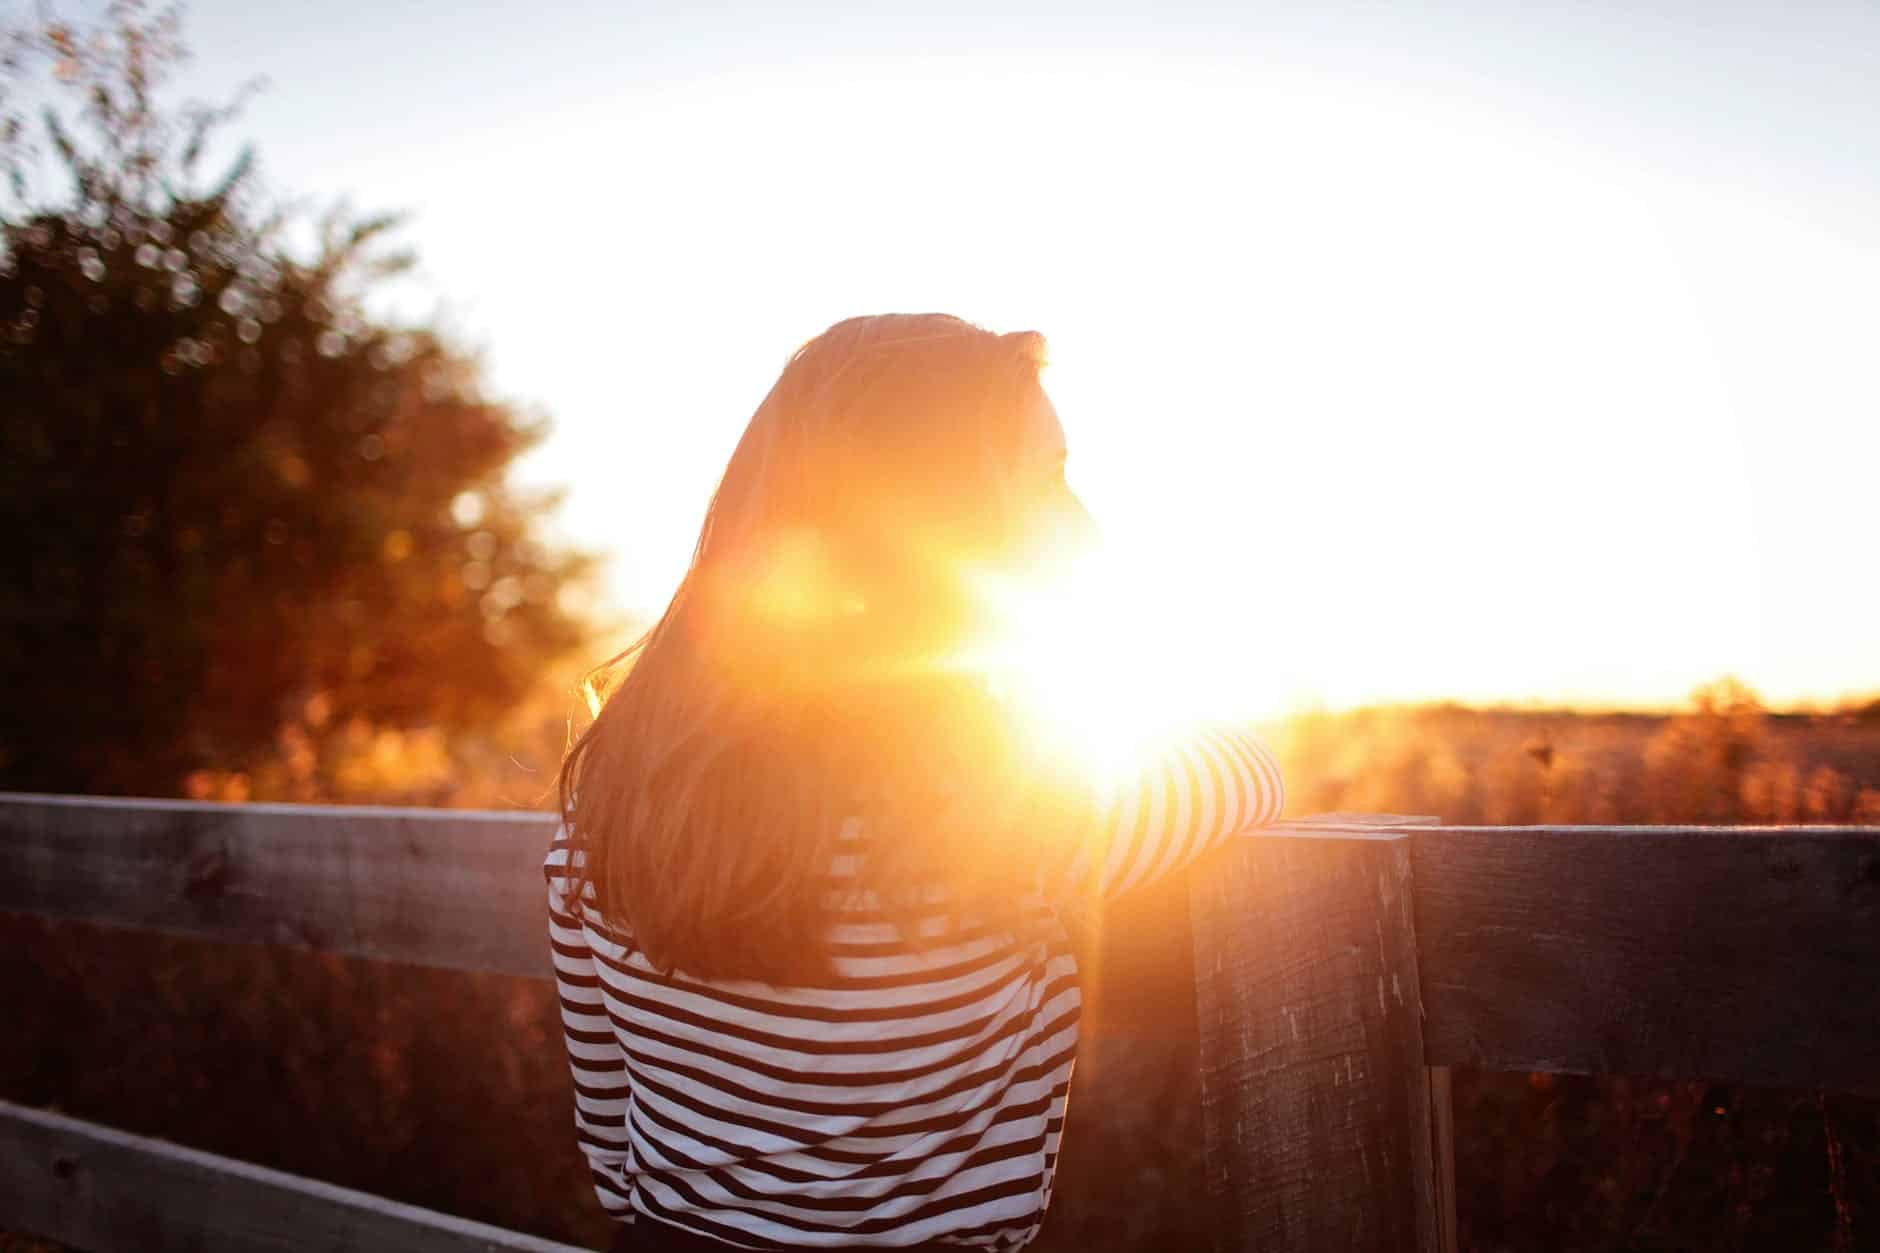 rear view of woman standing in balcony during sunset